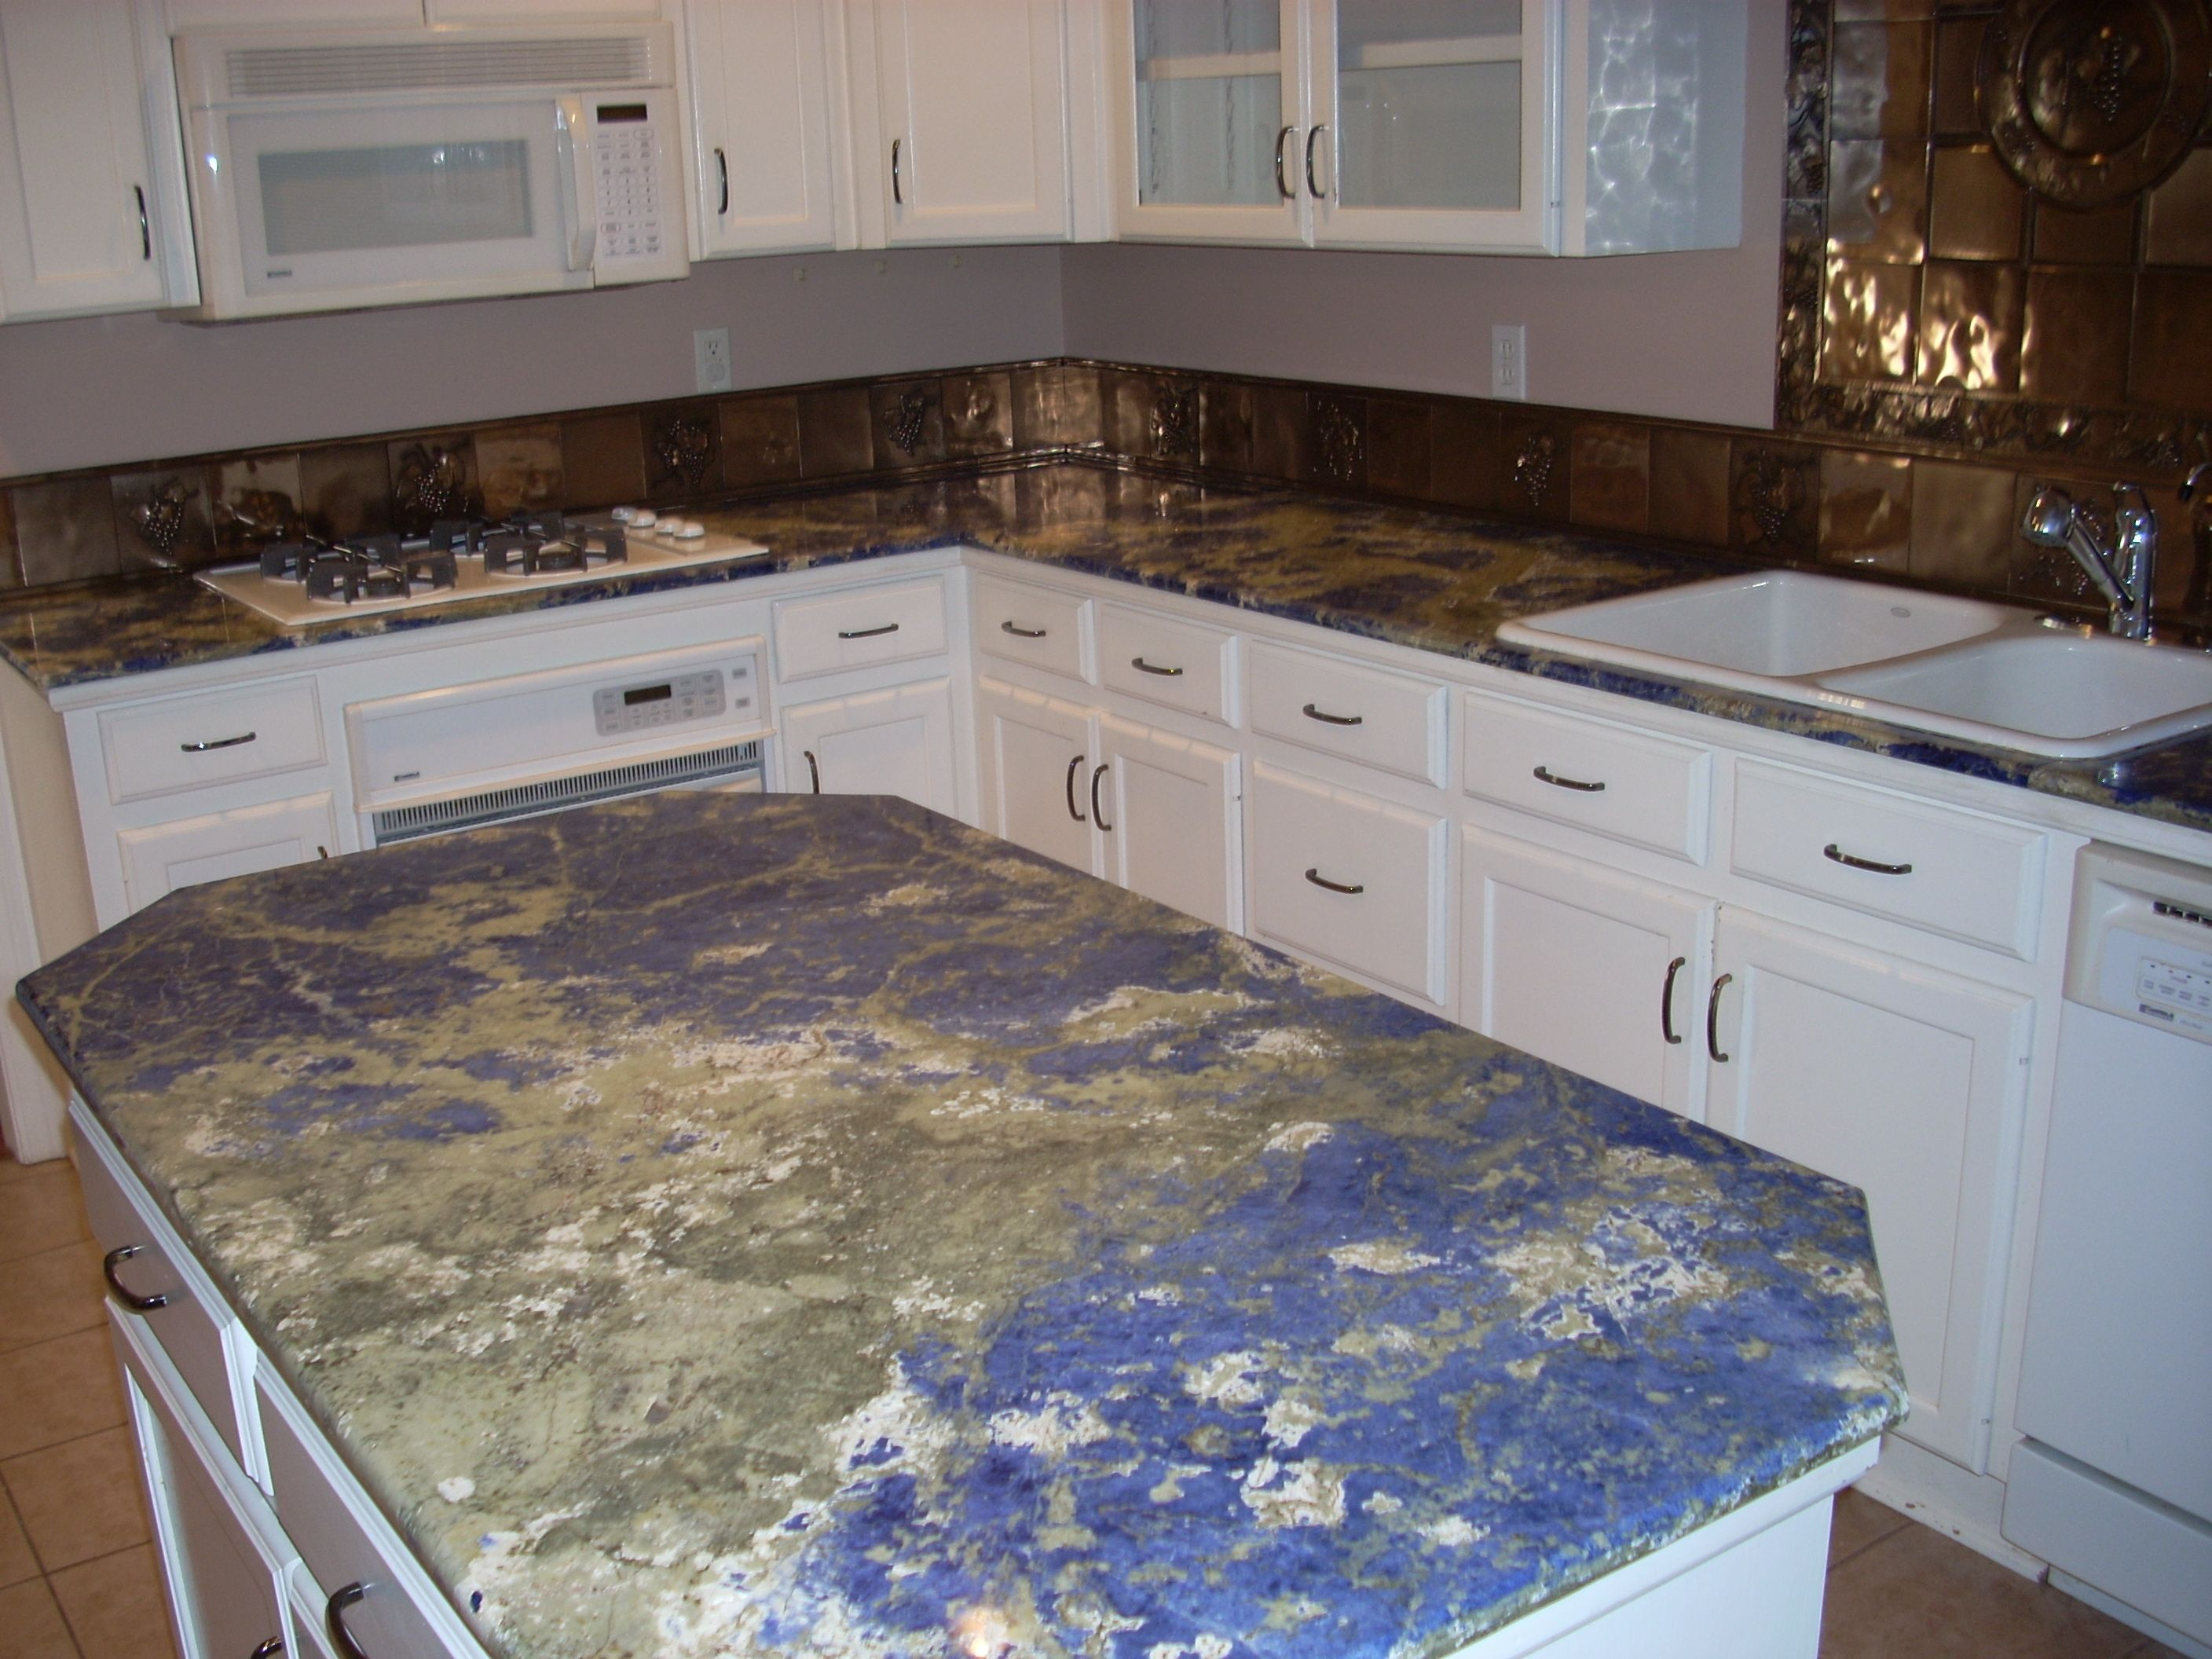 Good Sodalite Blue Granite Countertops. Amazing Texture Variation. Looks